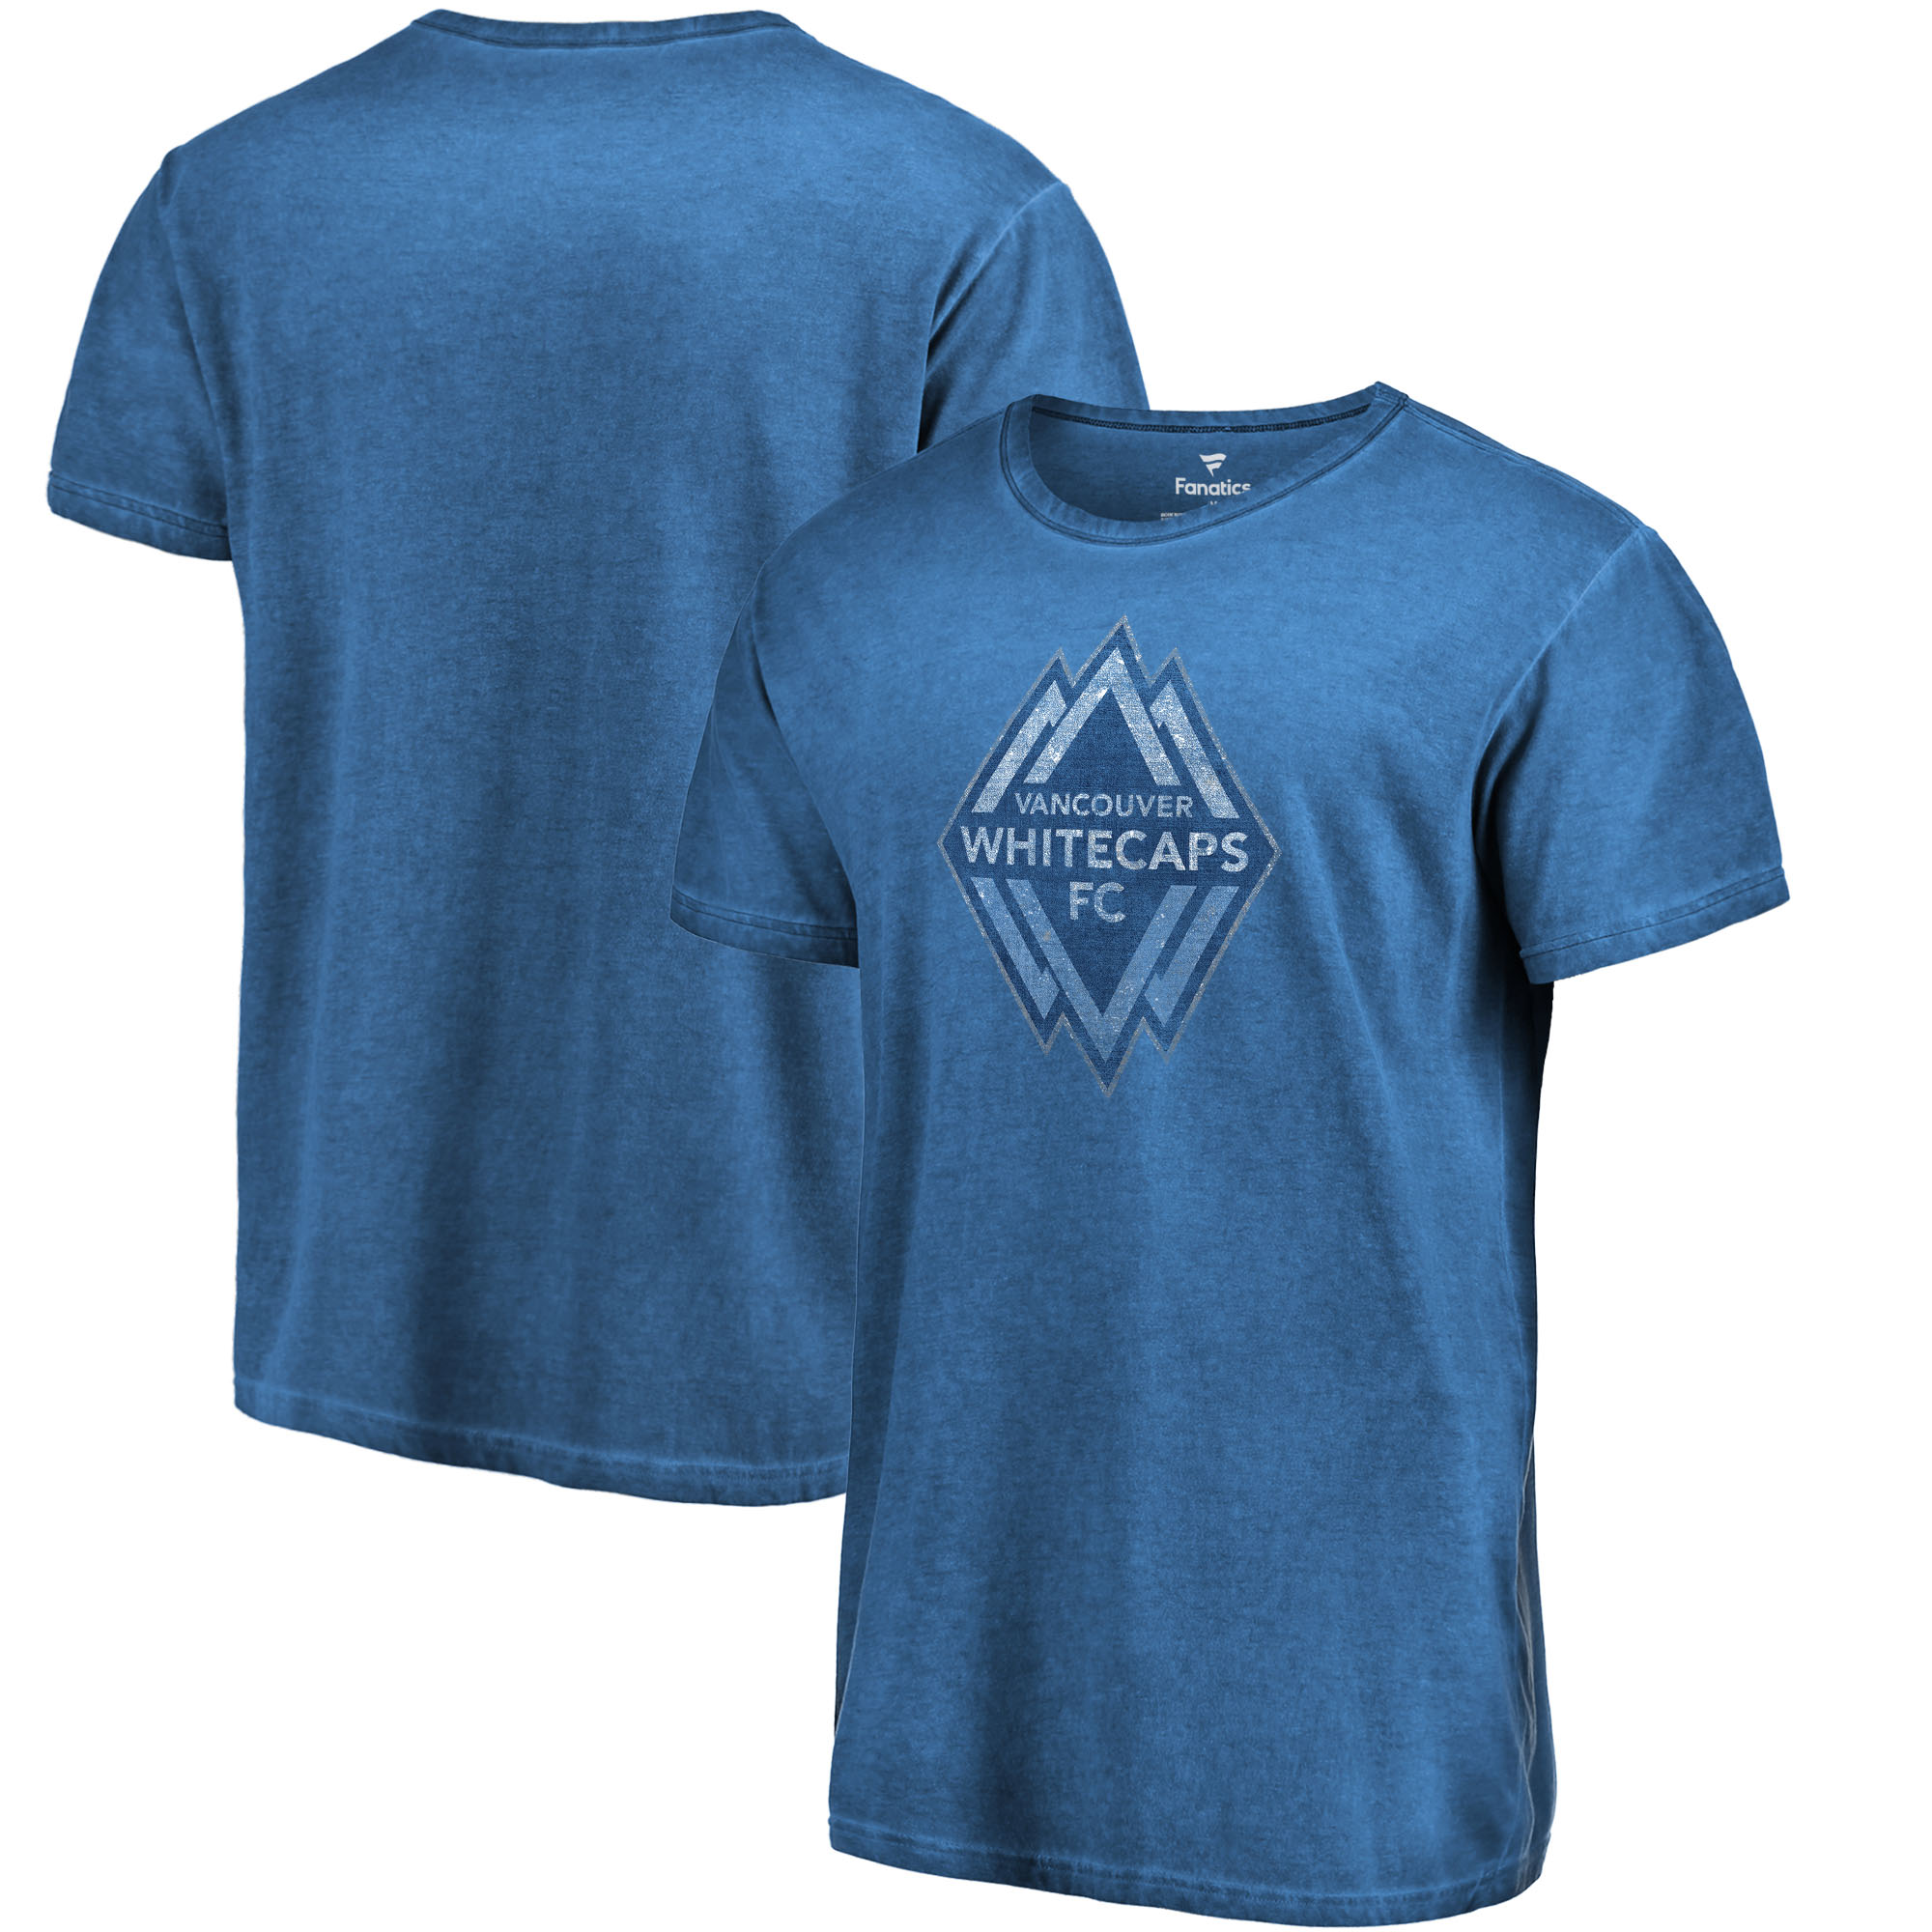 Vancouver Whitecaps FC Fanatics Branded Shadow Washed T-Shirt - Deep Sea Blue